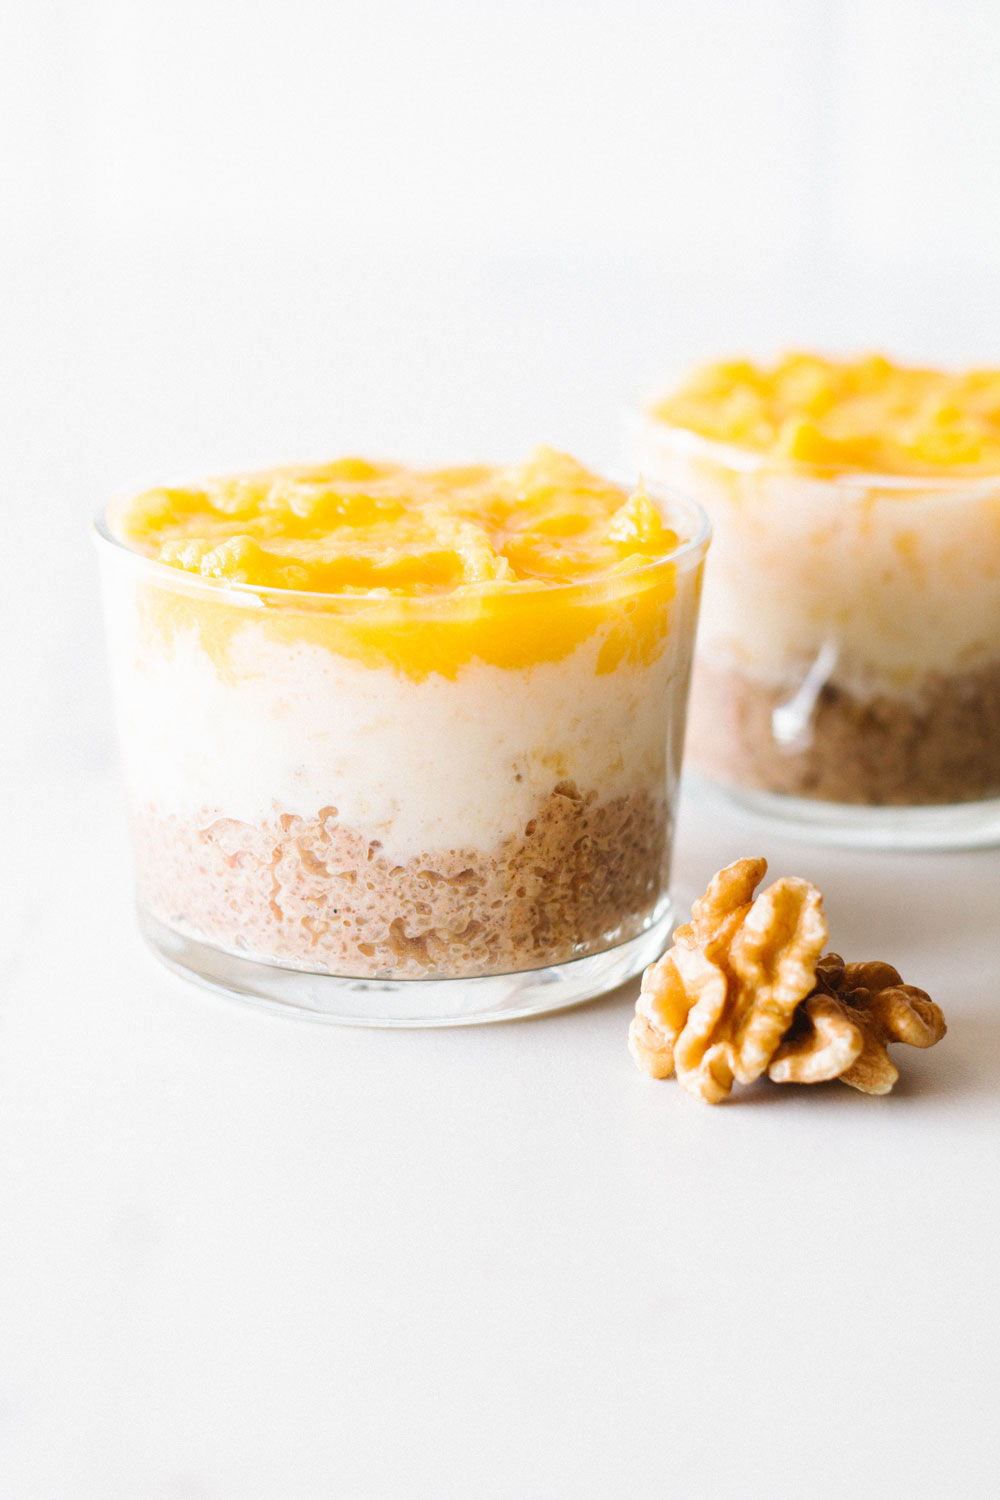 Embrace quinoa's sweet side with this creamy breakfast quinoa with banana and mango. It's totally healthy, super delicious and, in our opinion, the new breakfast of champions! https://www.spotebi.com/recipes/creamy-breakfast-quinoa-banana-mango/